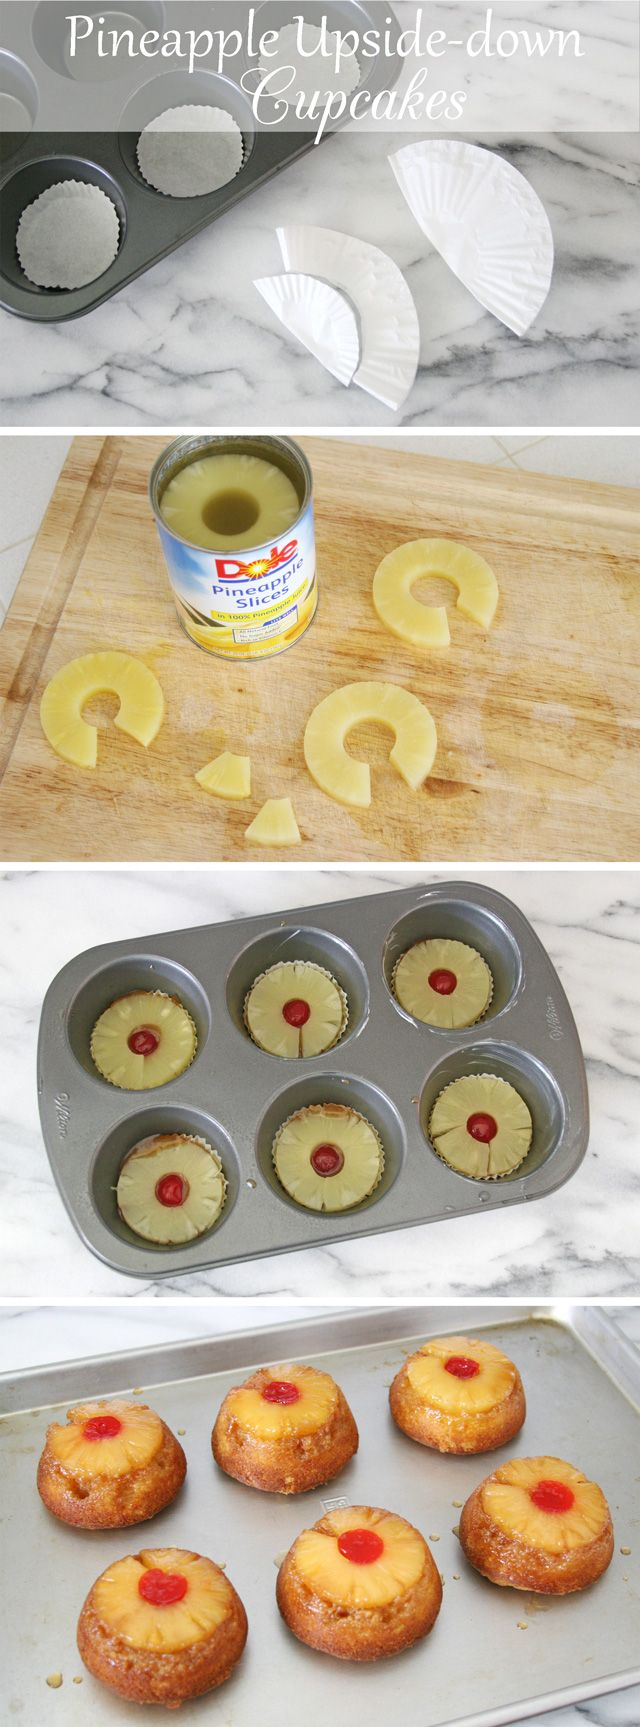 """""""Pineapple Upside-Down Cupcakes - by  glorioustreats.com""""  Awesome recipe! Except I didn't use corn syrup in my glaze. No need! The cake recipe is awesome, but don't expect healthy. These were a definite hit."""